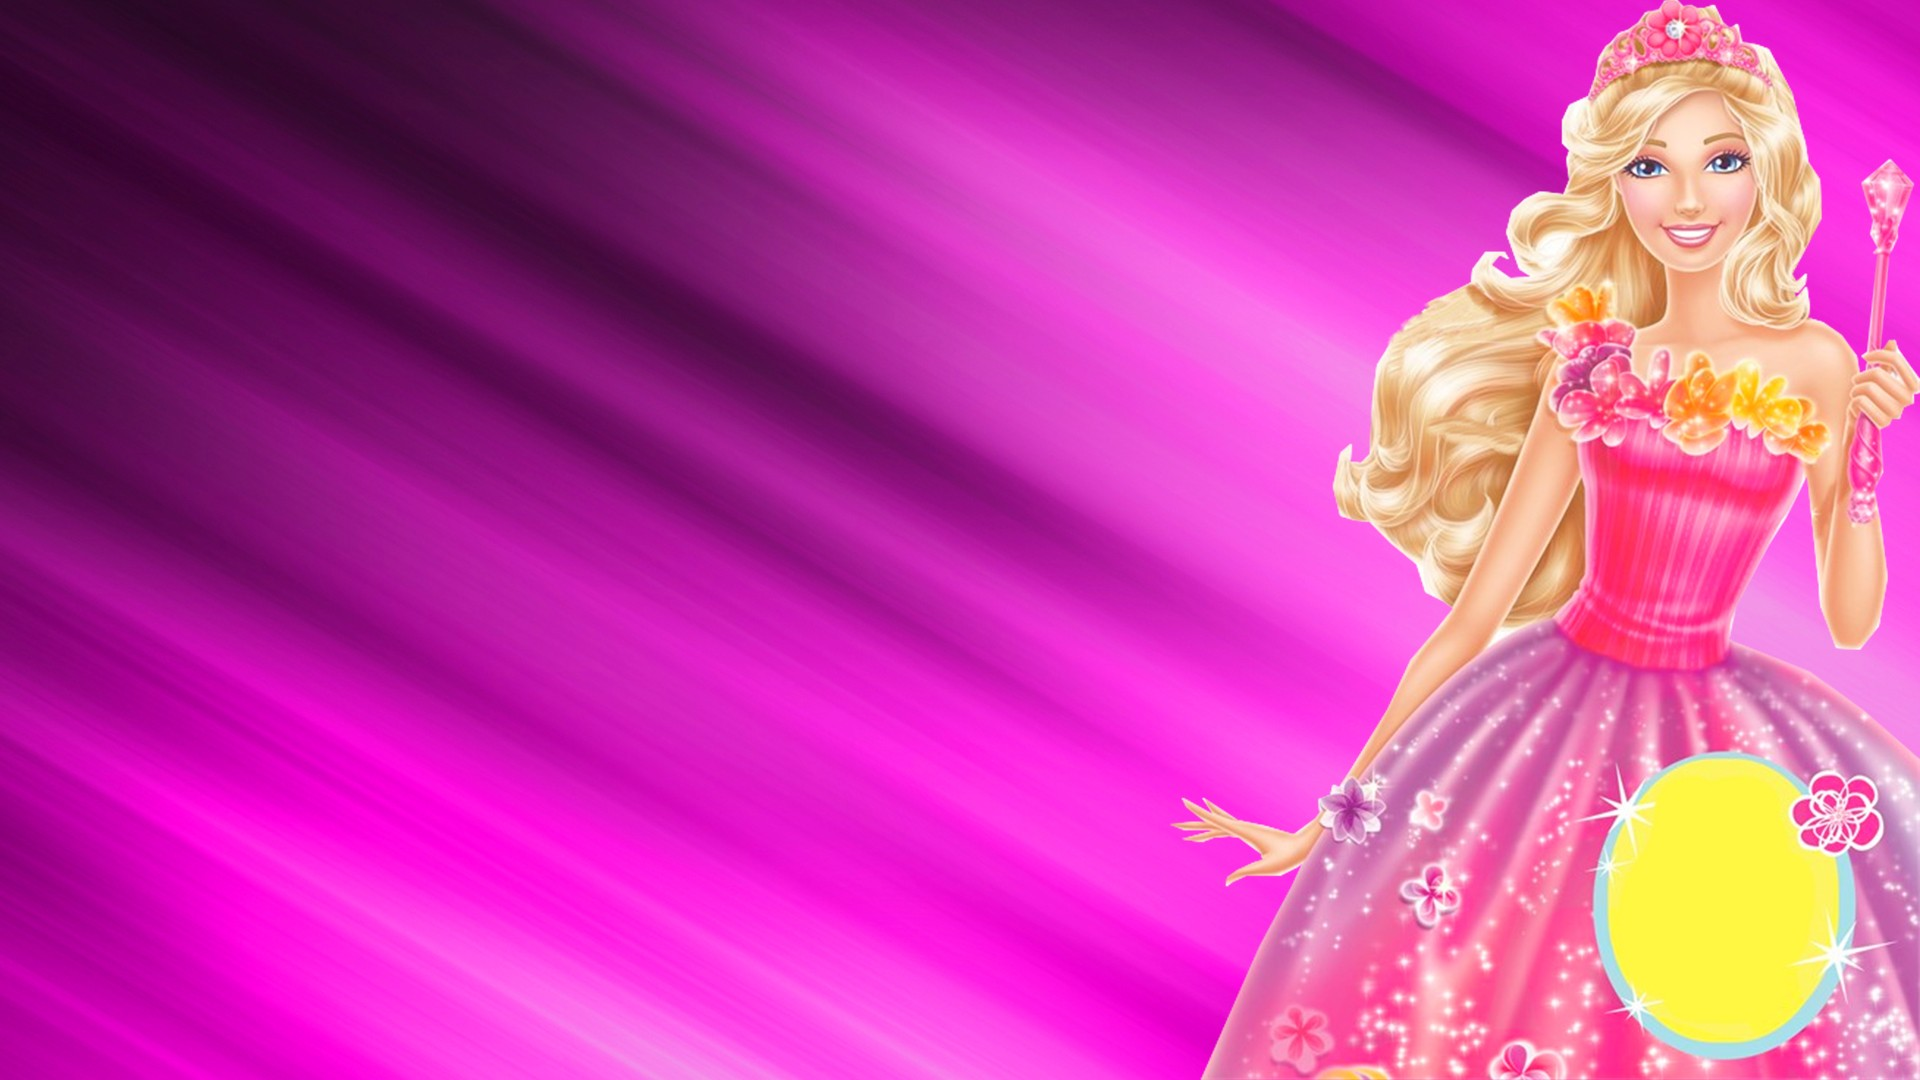 Barbie Hd Wallpapers - Barbie Background Images Hd , HD Wallpaper & Backgrounds